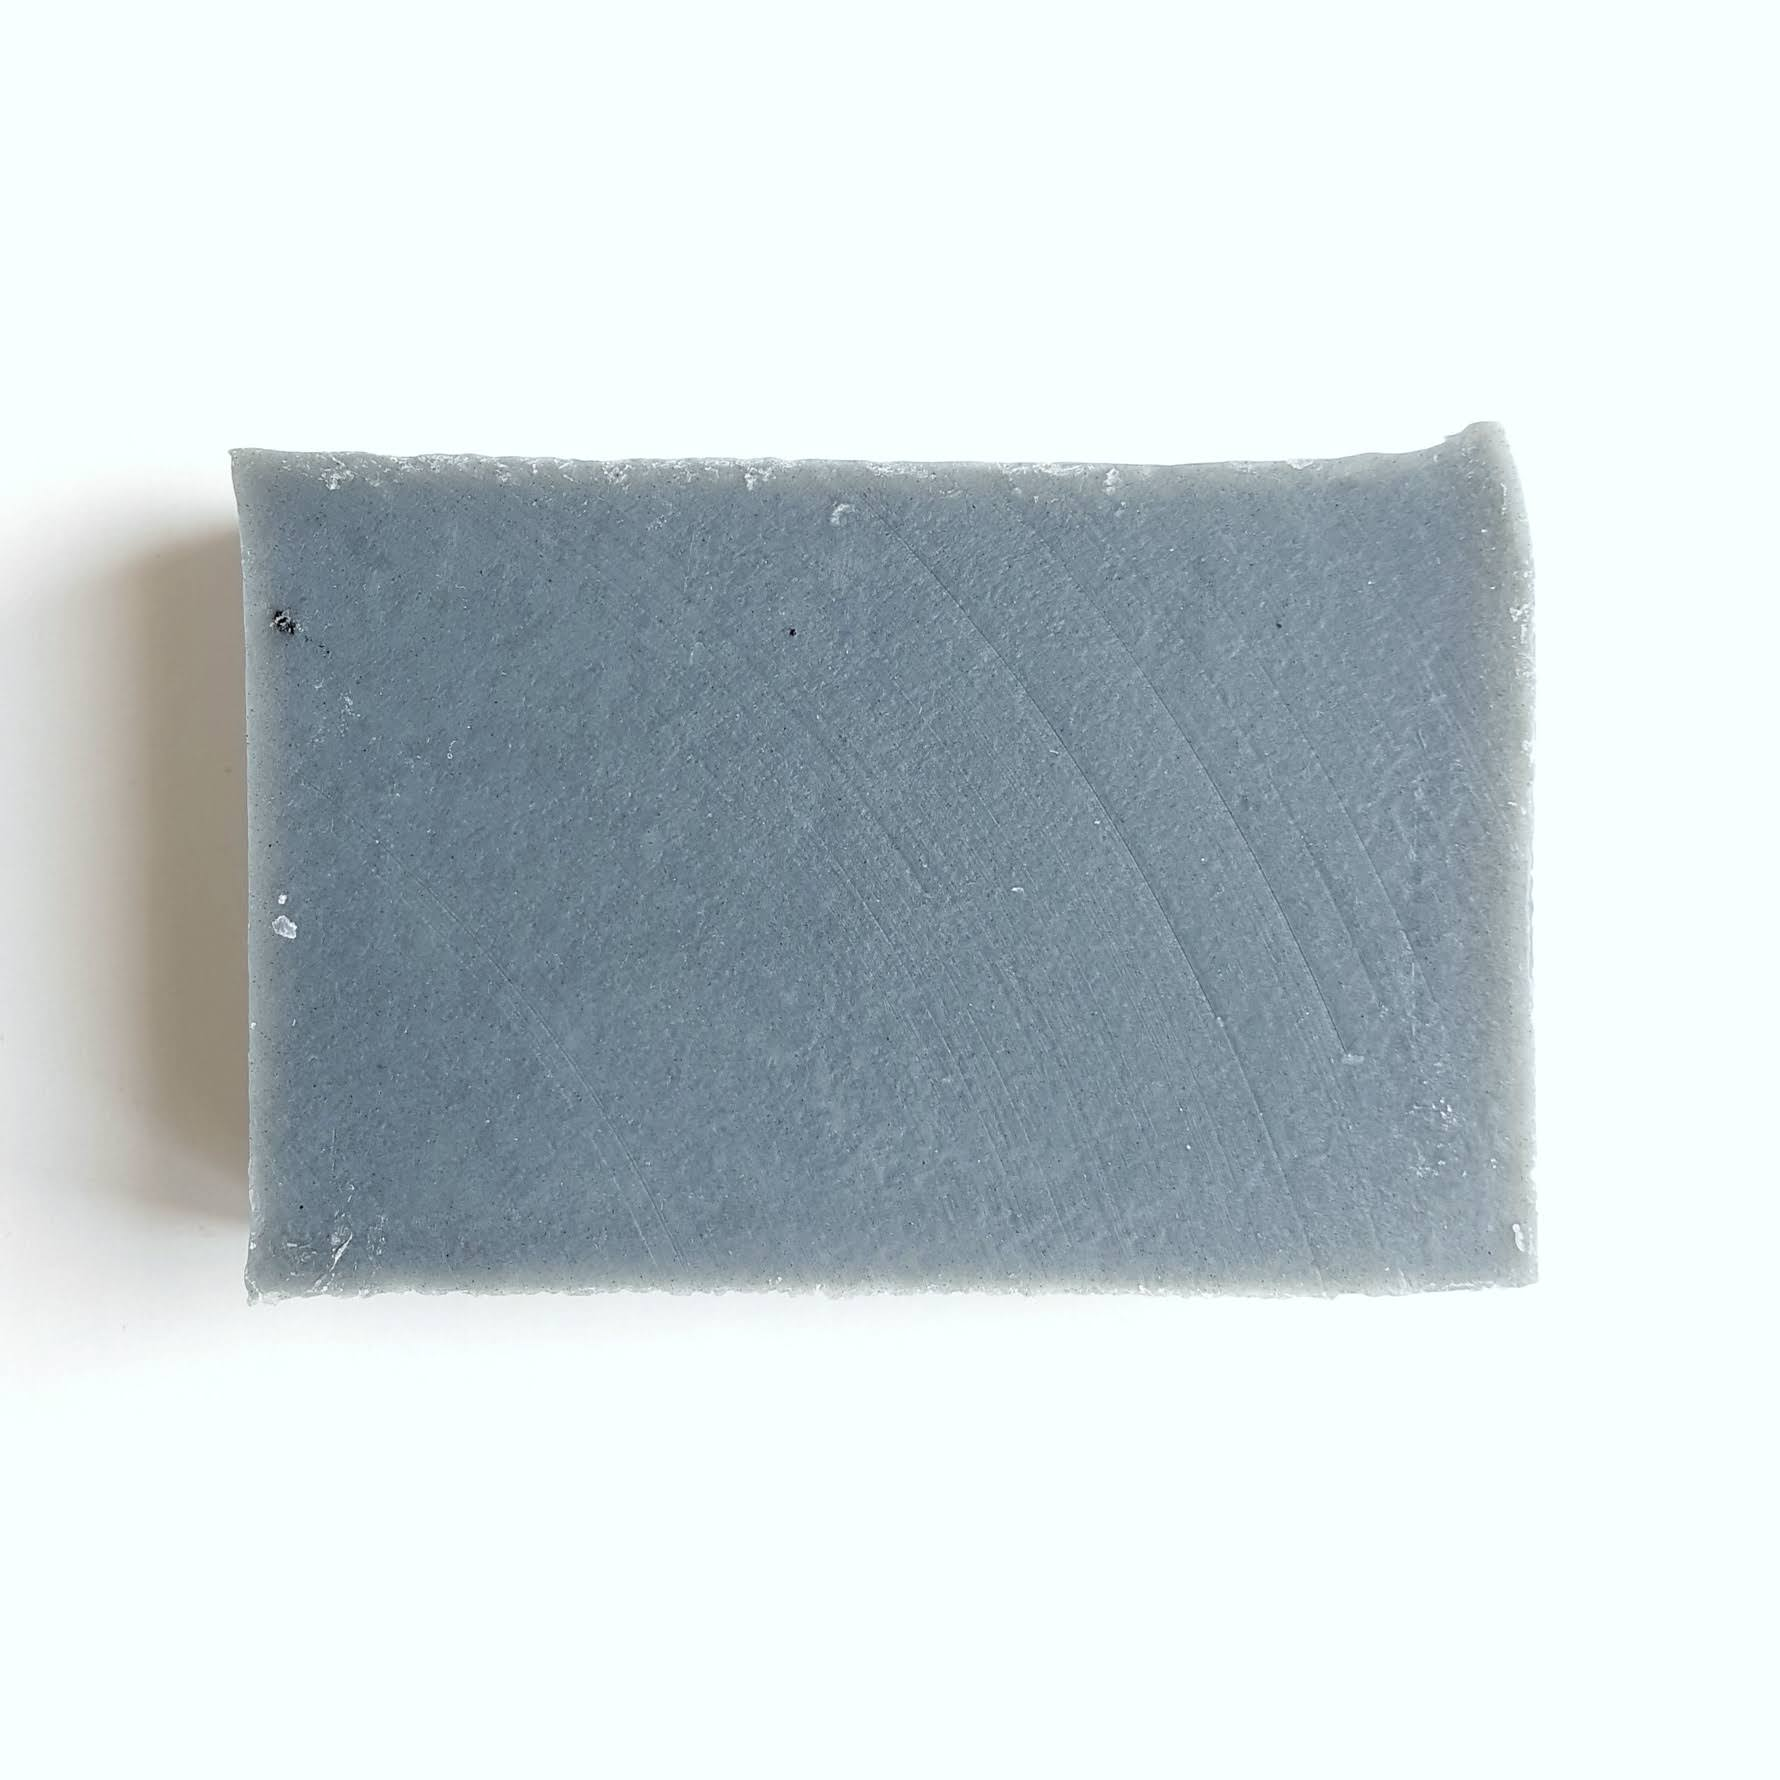 New! Stone Mother Soap